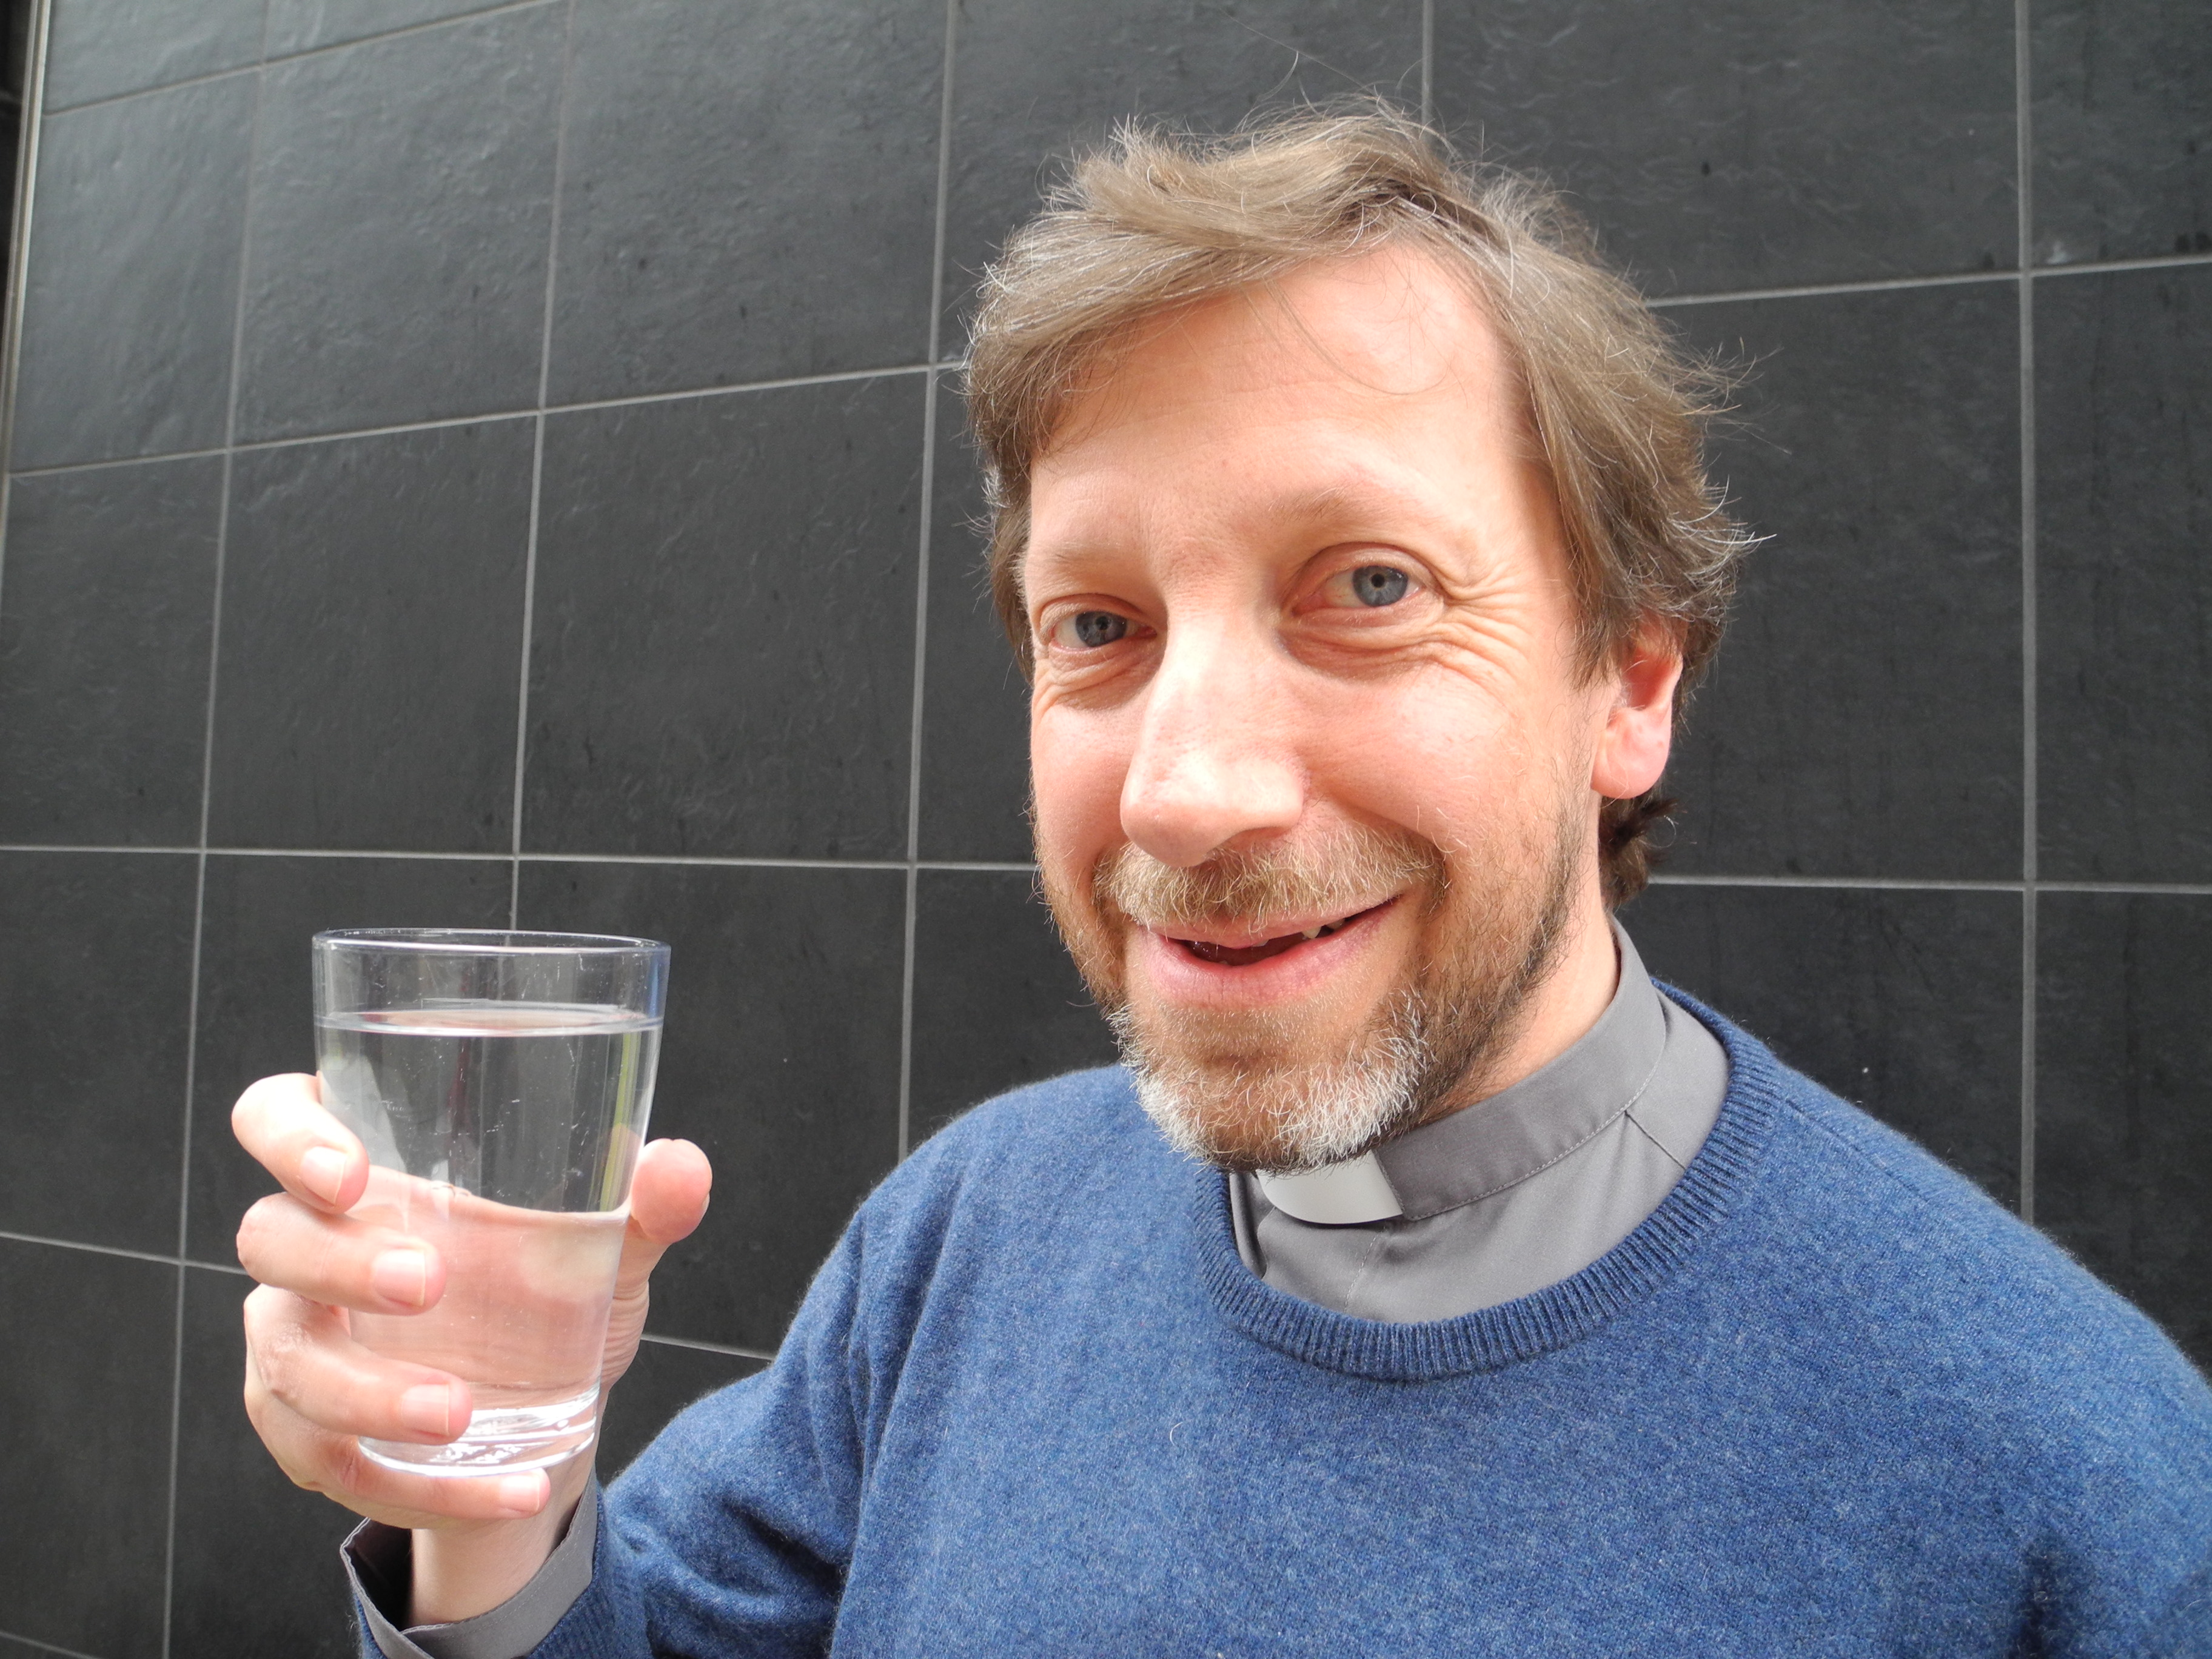 Father Rob starts his water challenge